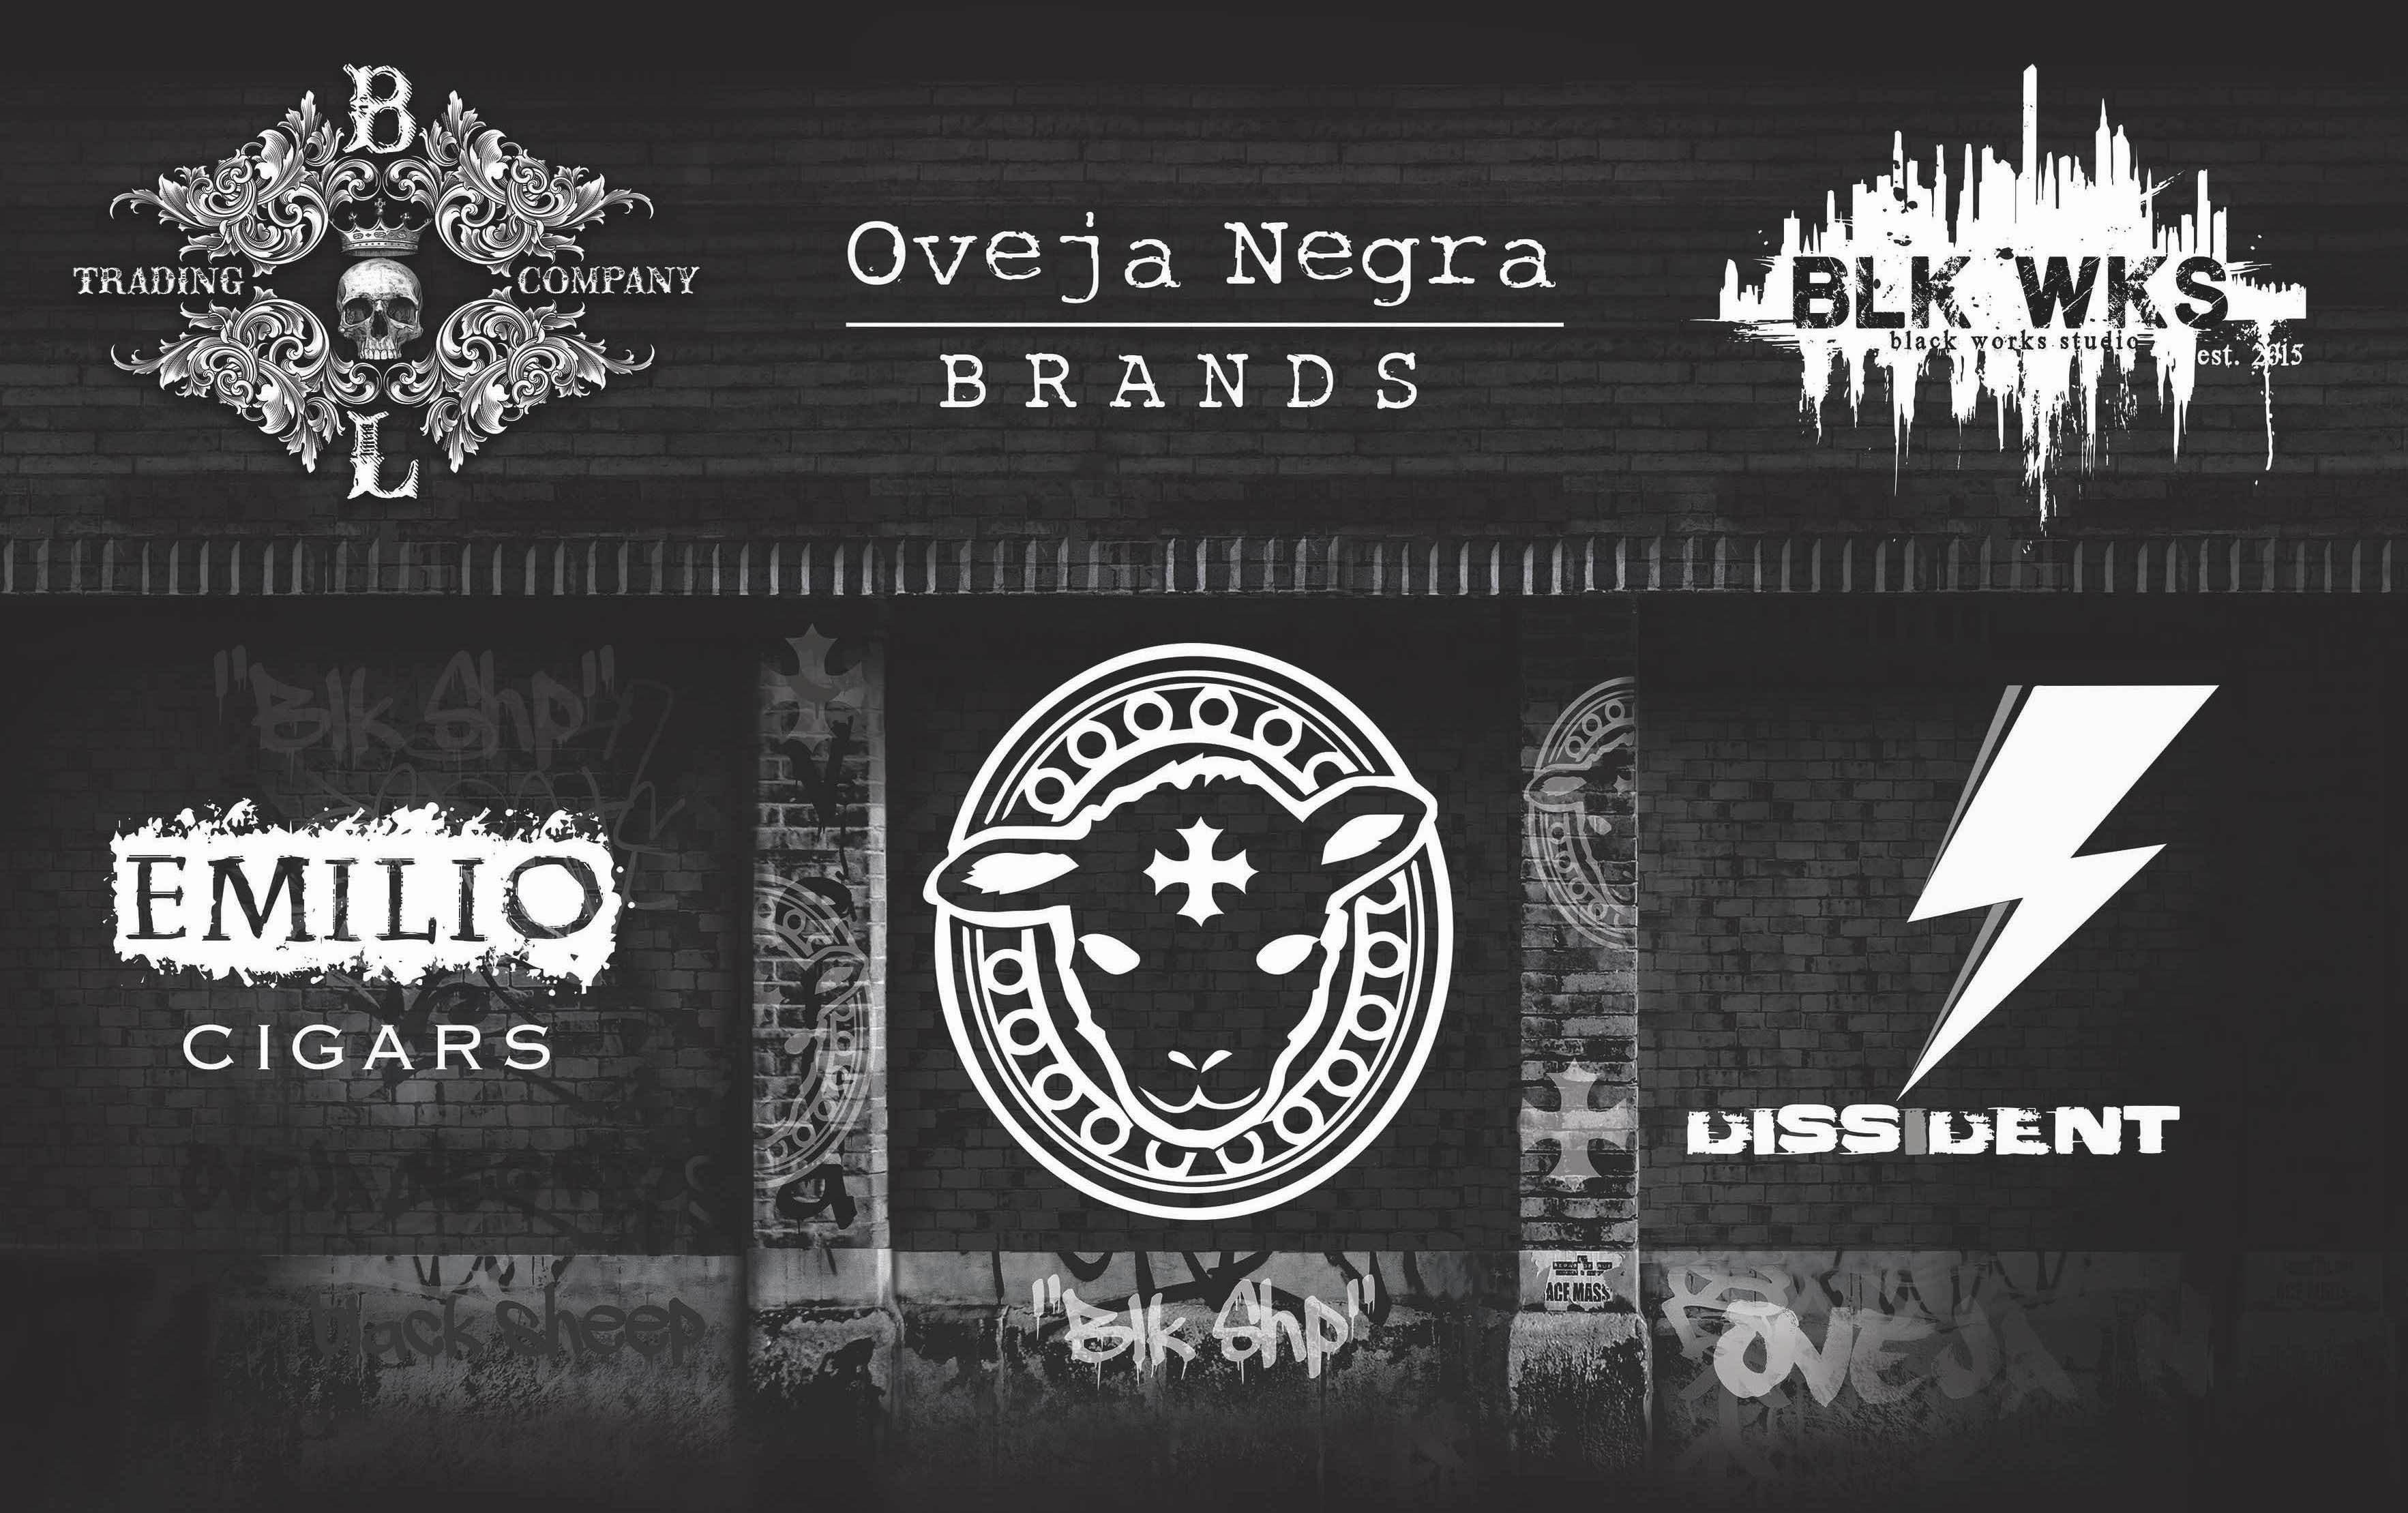 Cigar News: Oveja Negra Brands to Attend 2020 PCA